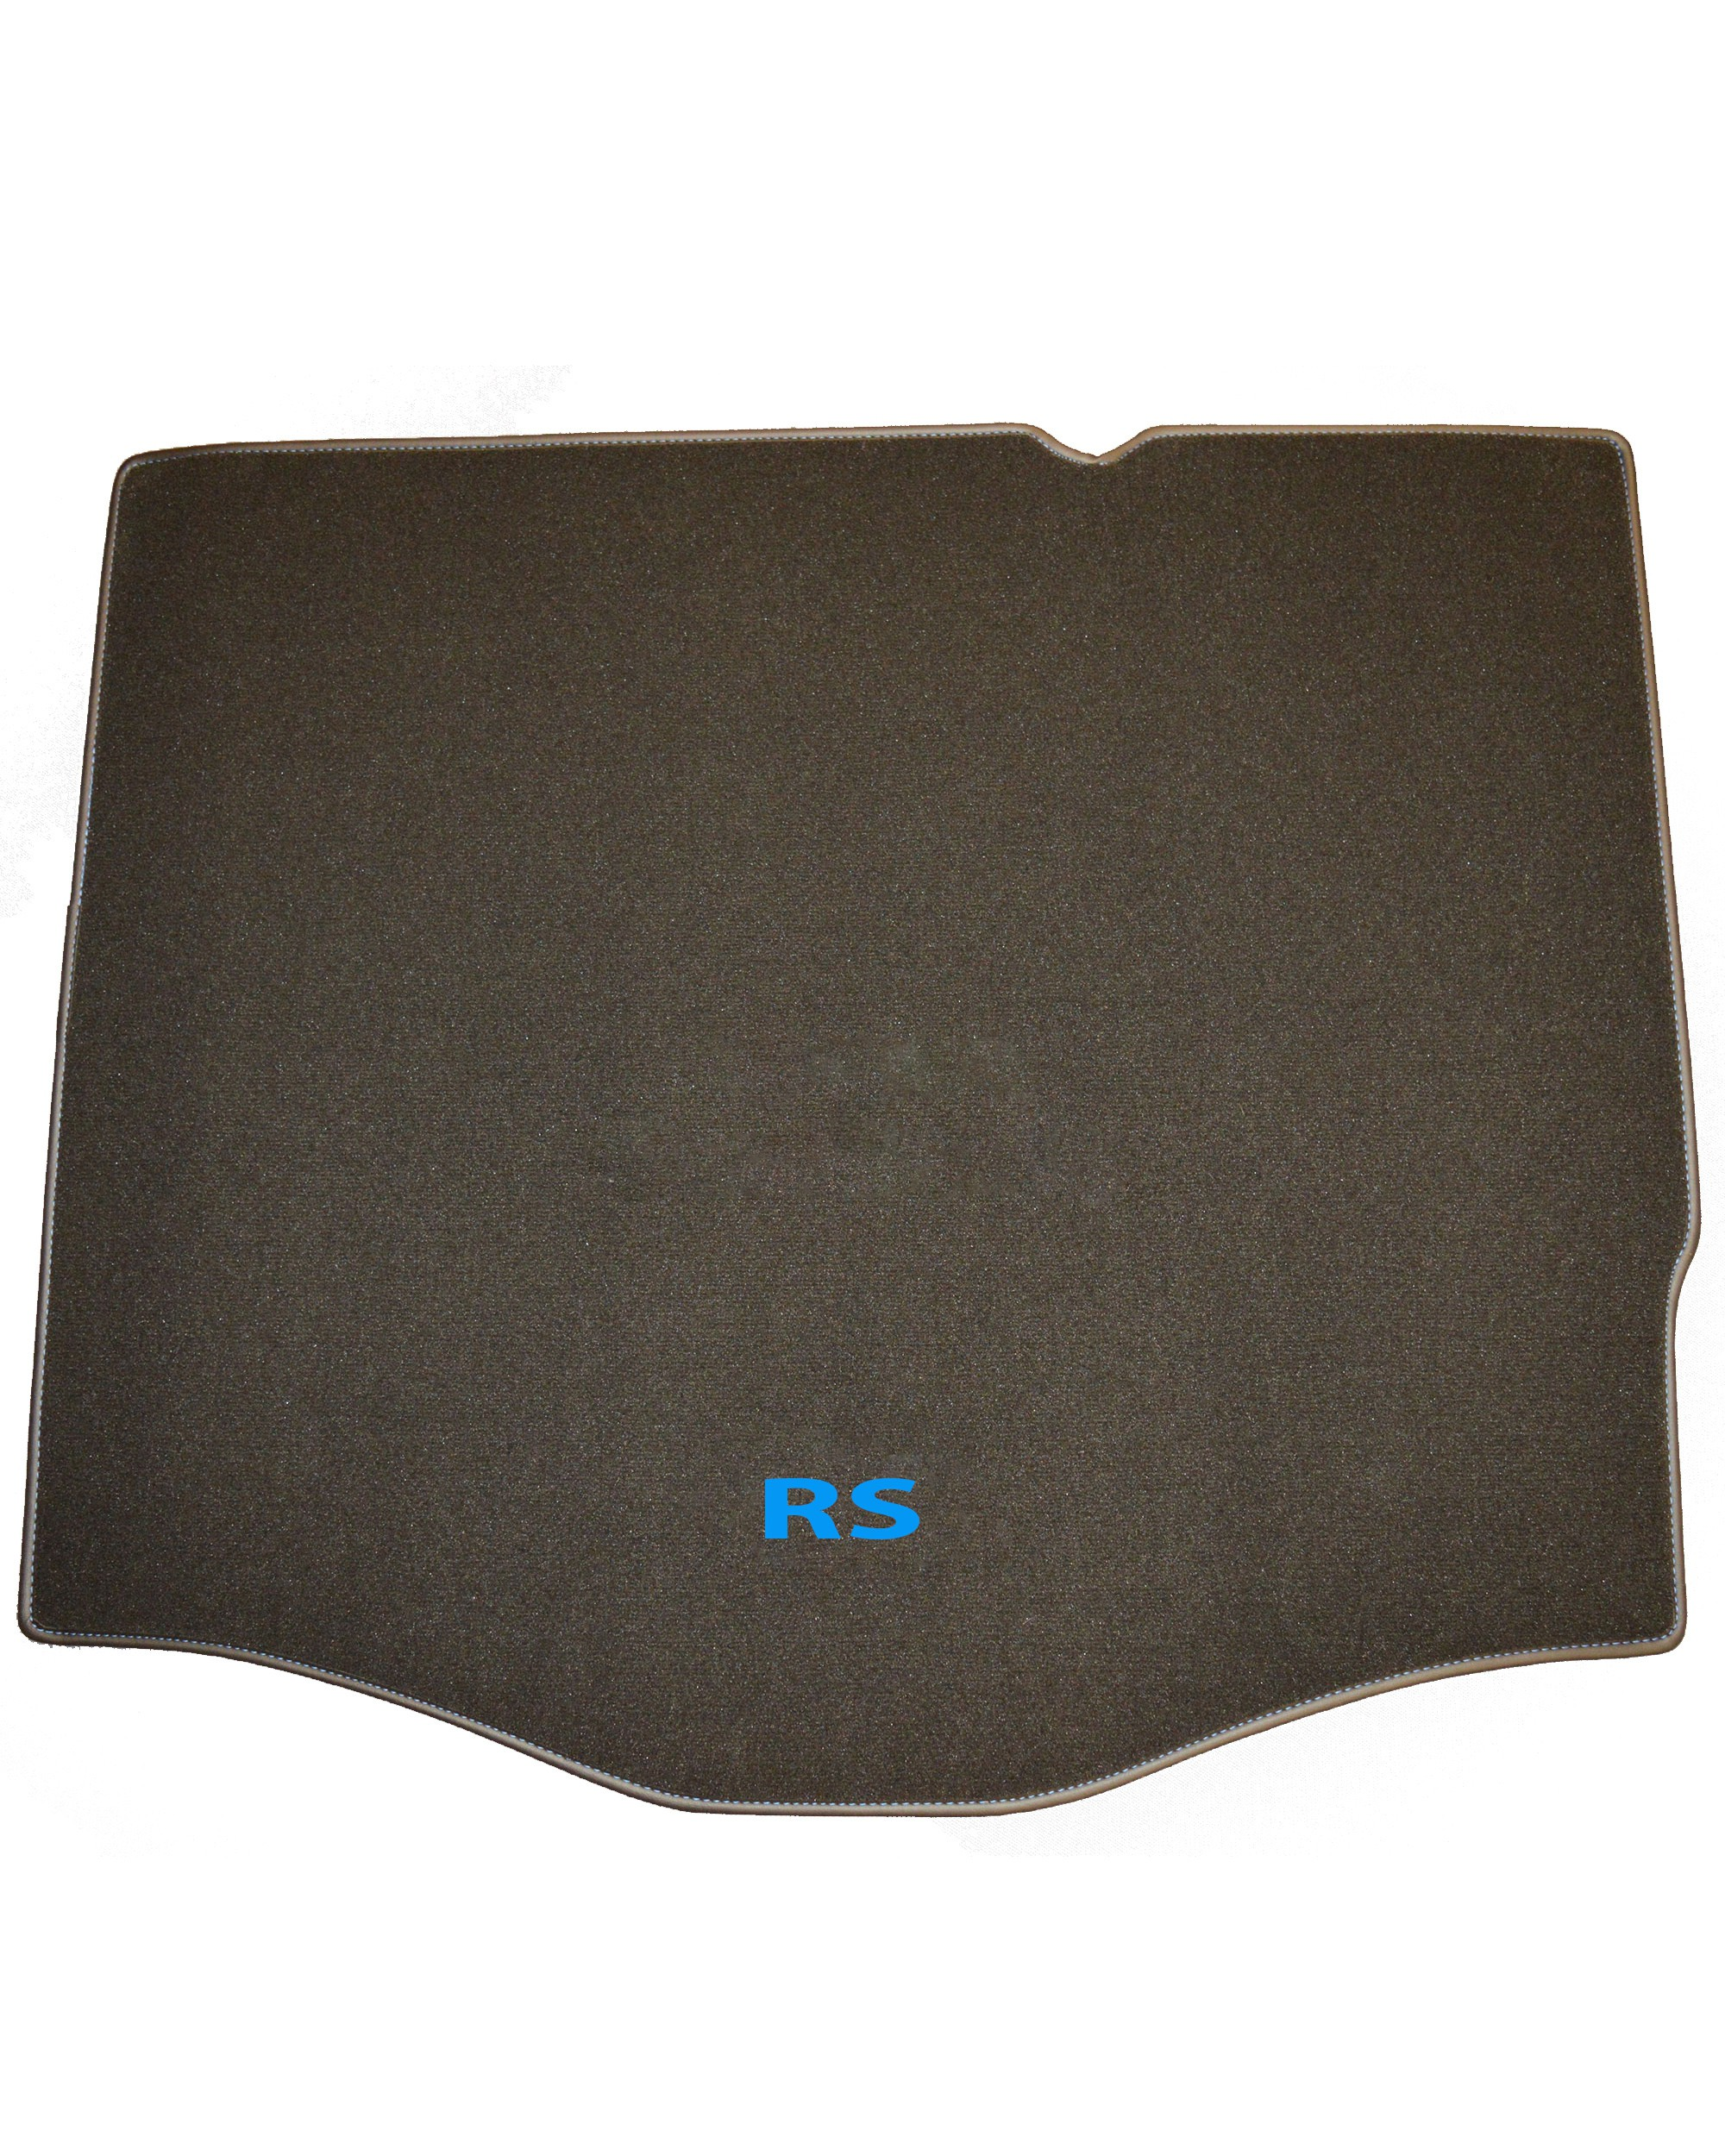 Ford Focus RS MK3 Luxury Boot Mat